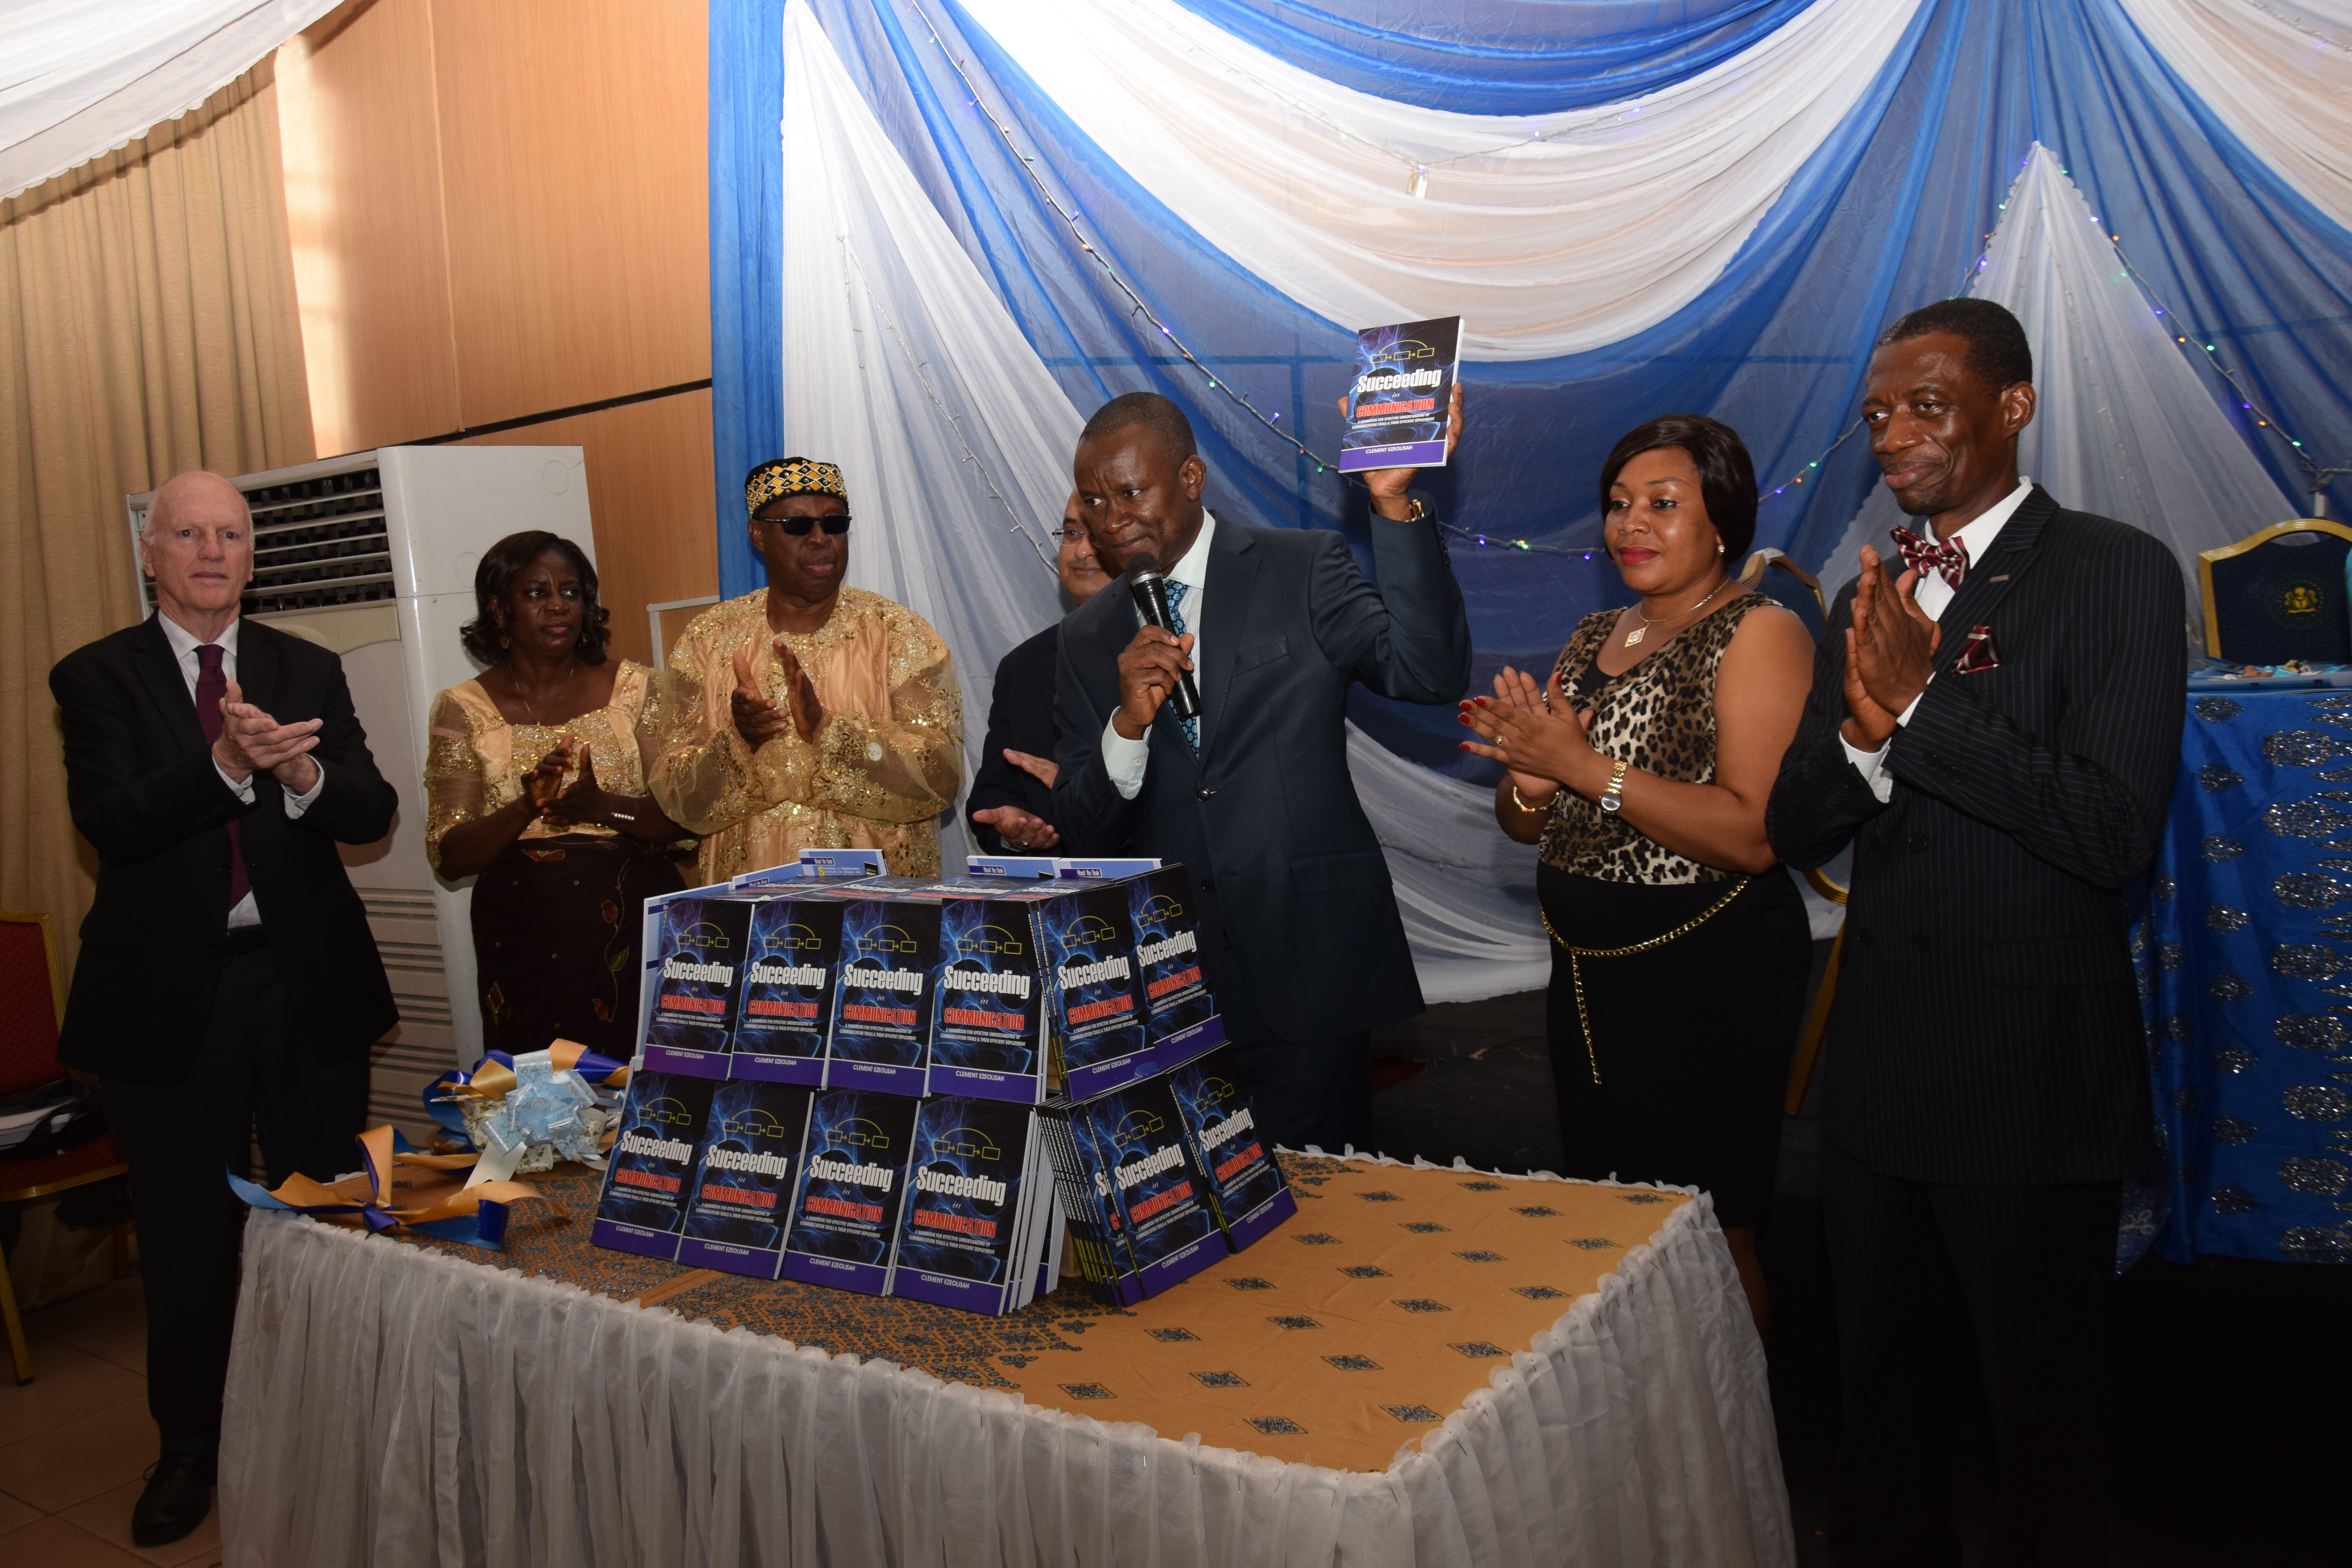 Sen. John Enoh presents the book, while others including the author appreciate the occasion